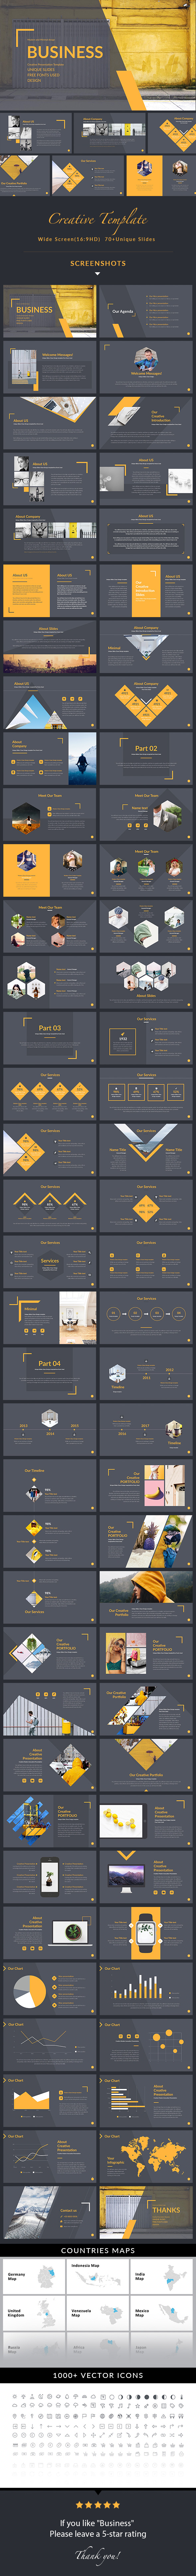 Business - Simple Multipurpose Powerpoint Template - Business PowerPoint Templates